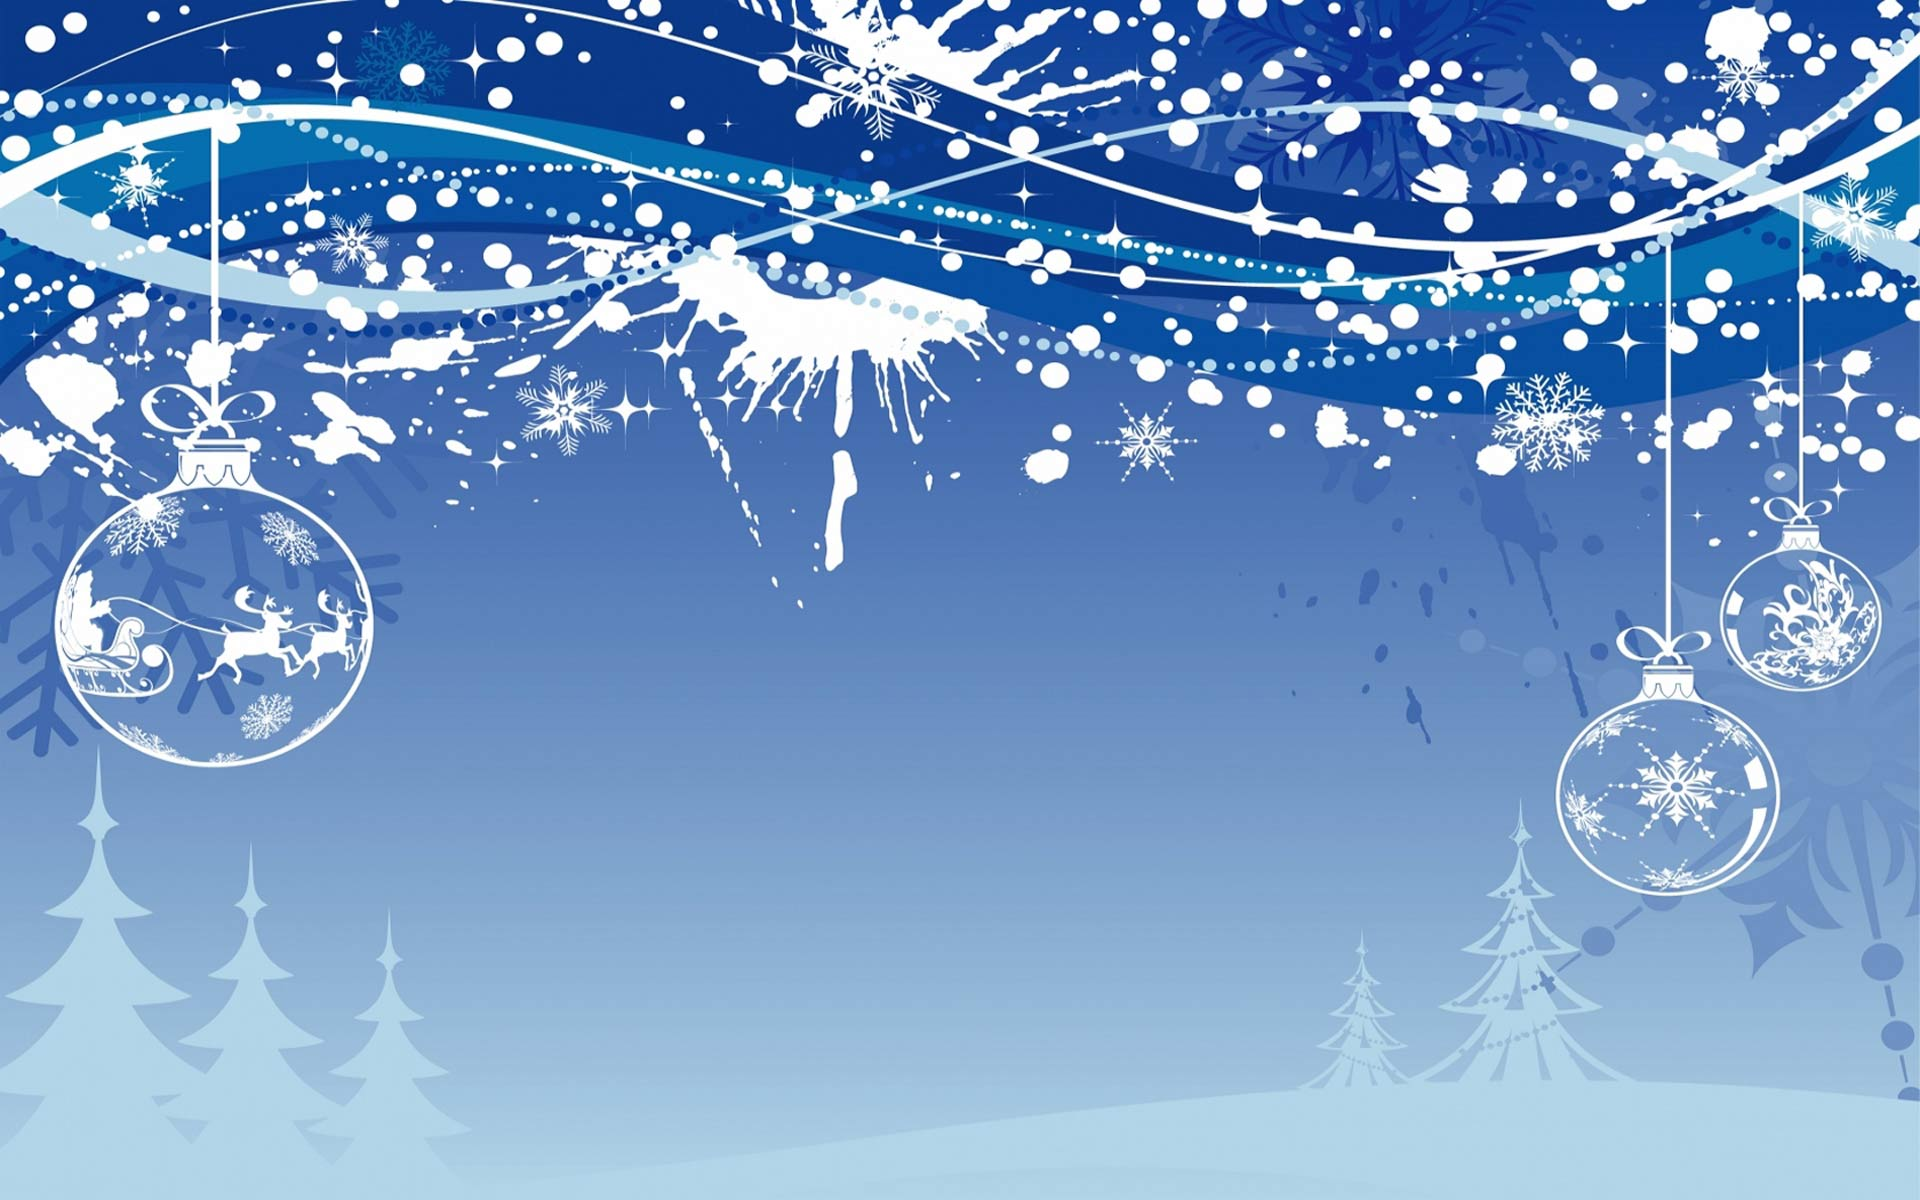 Wallpapers Christmas Free